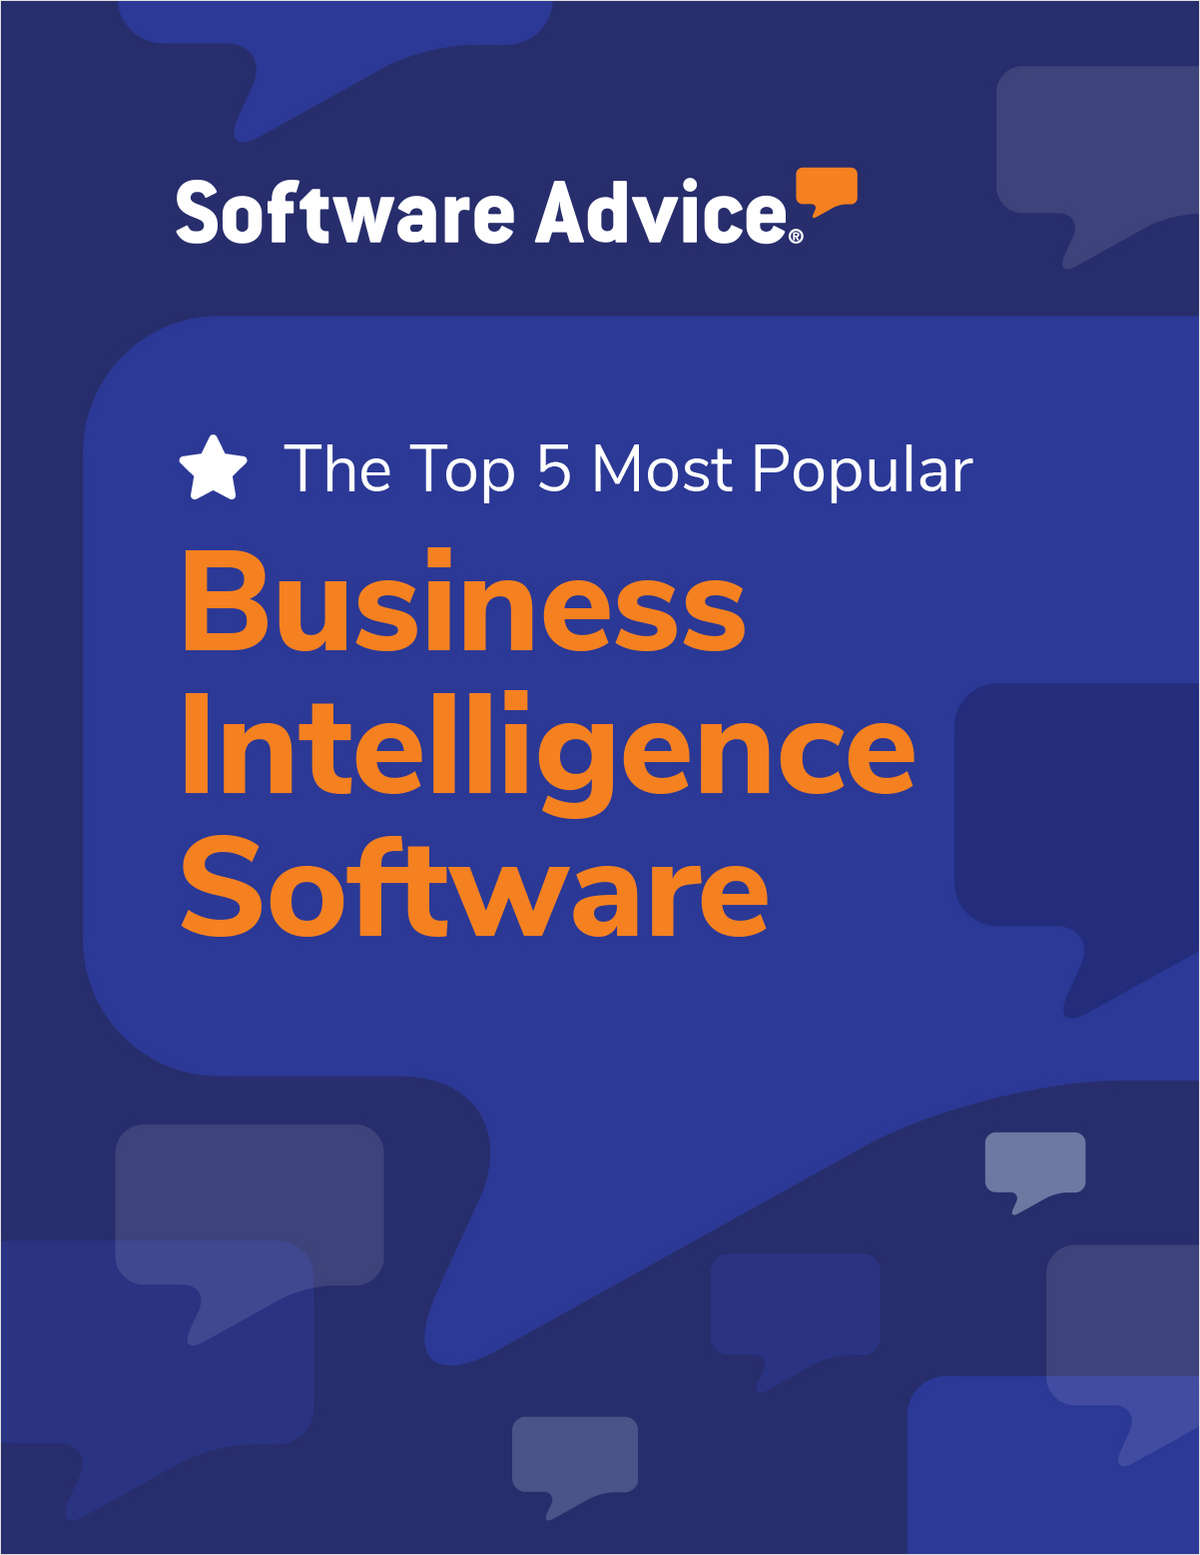 Software Advice's Top 5: Most Popular Business Intelligence Software